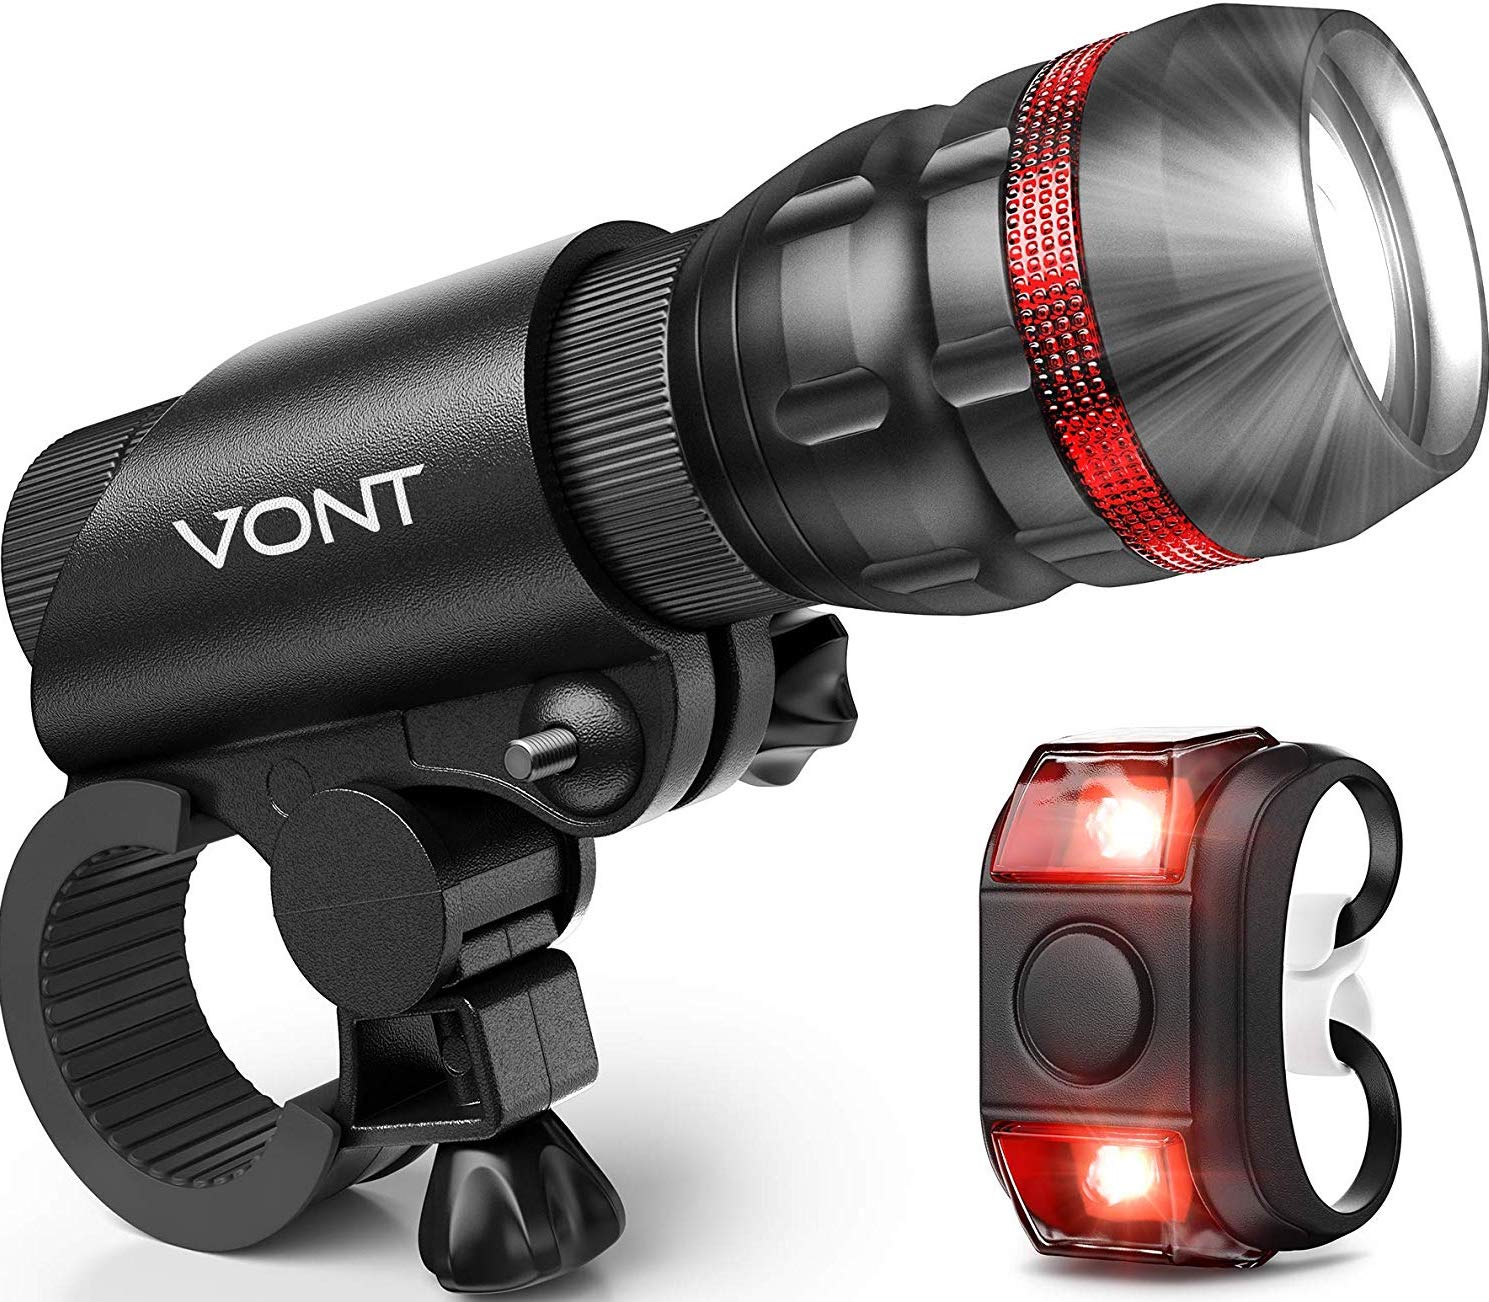 vont-bike-light-front-and-rear-render-cropped